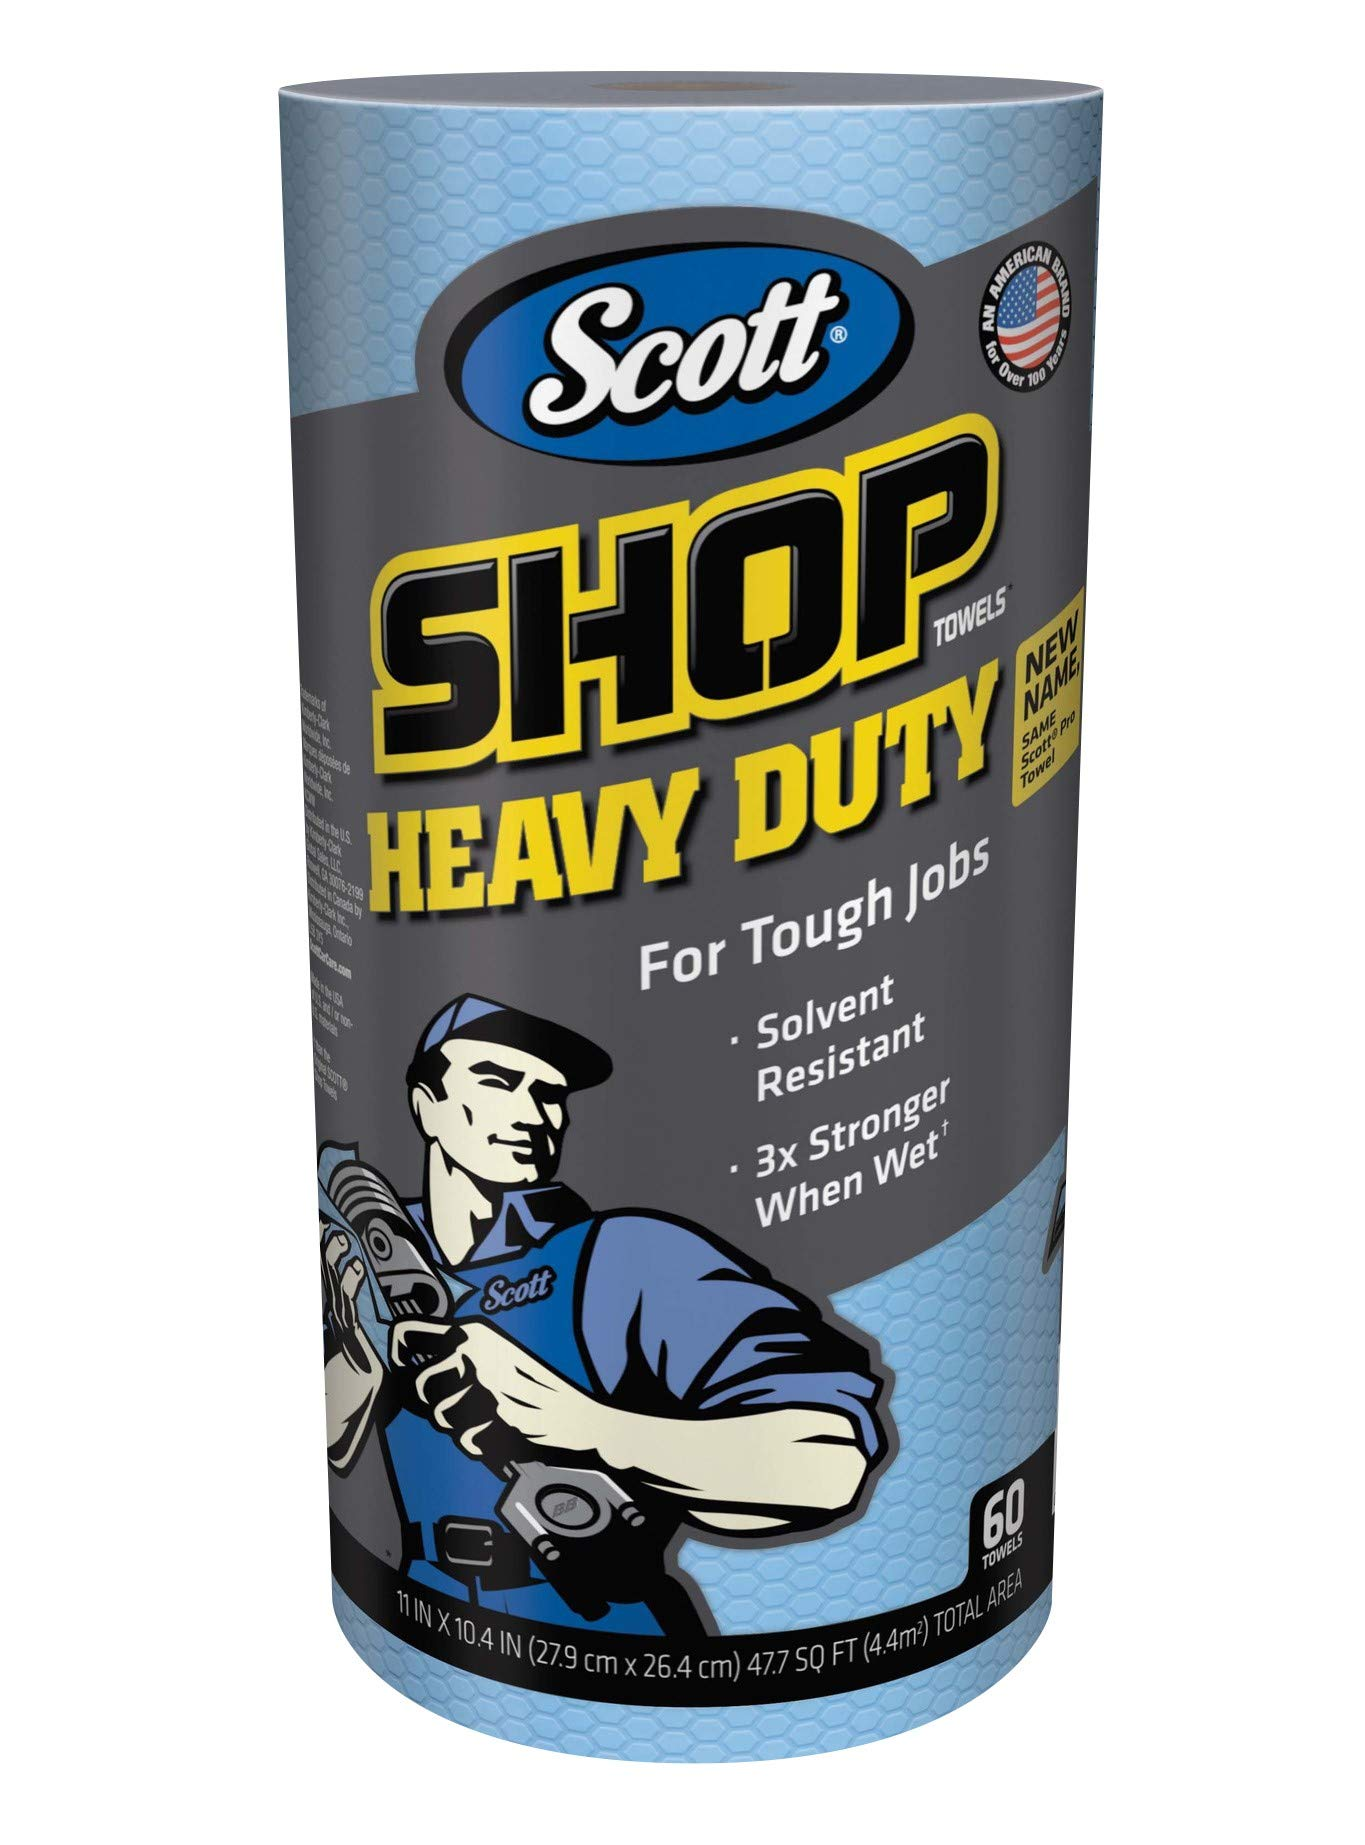 Scott Shop Towels Heavy Duty (32992), Blue Shop Towels for Solvents & Heavy-Duty Jobs, 60 Sheets / Roll, 720 Sheets / Case  (Pack of 12) by Scott